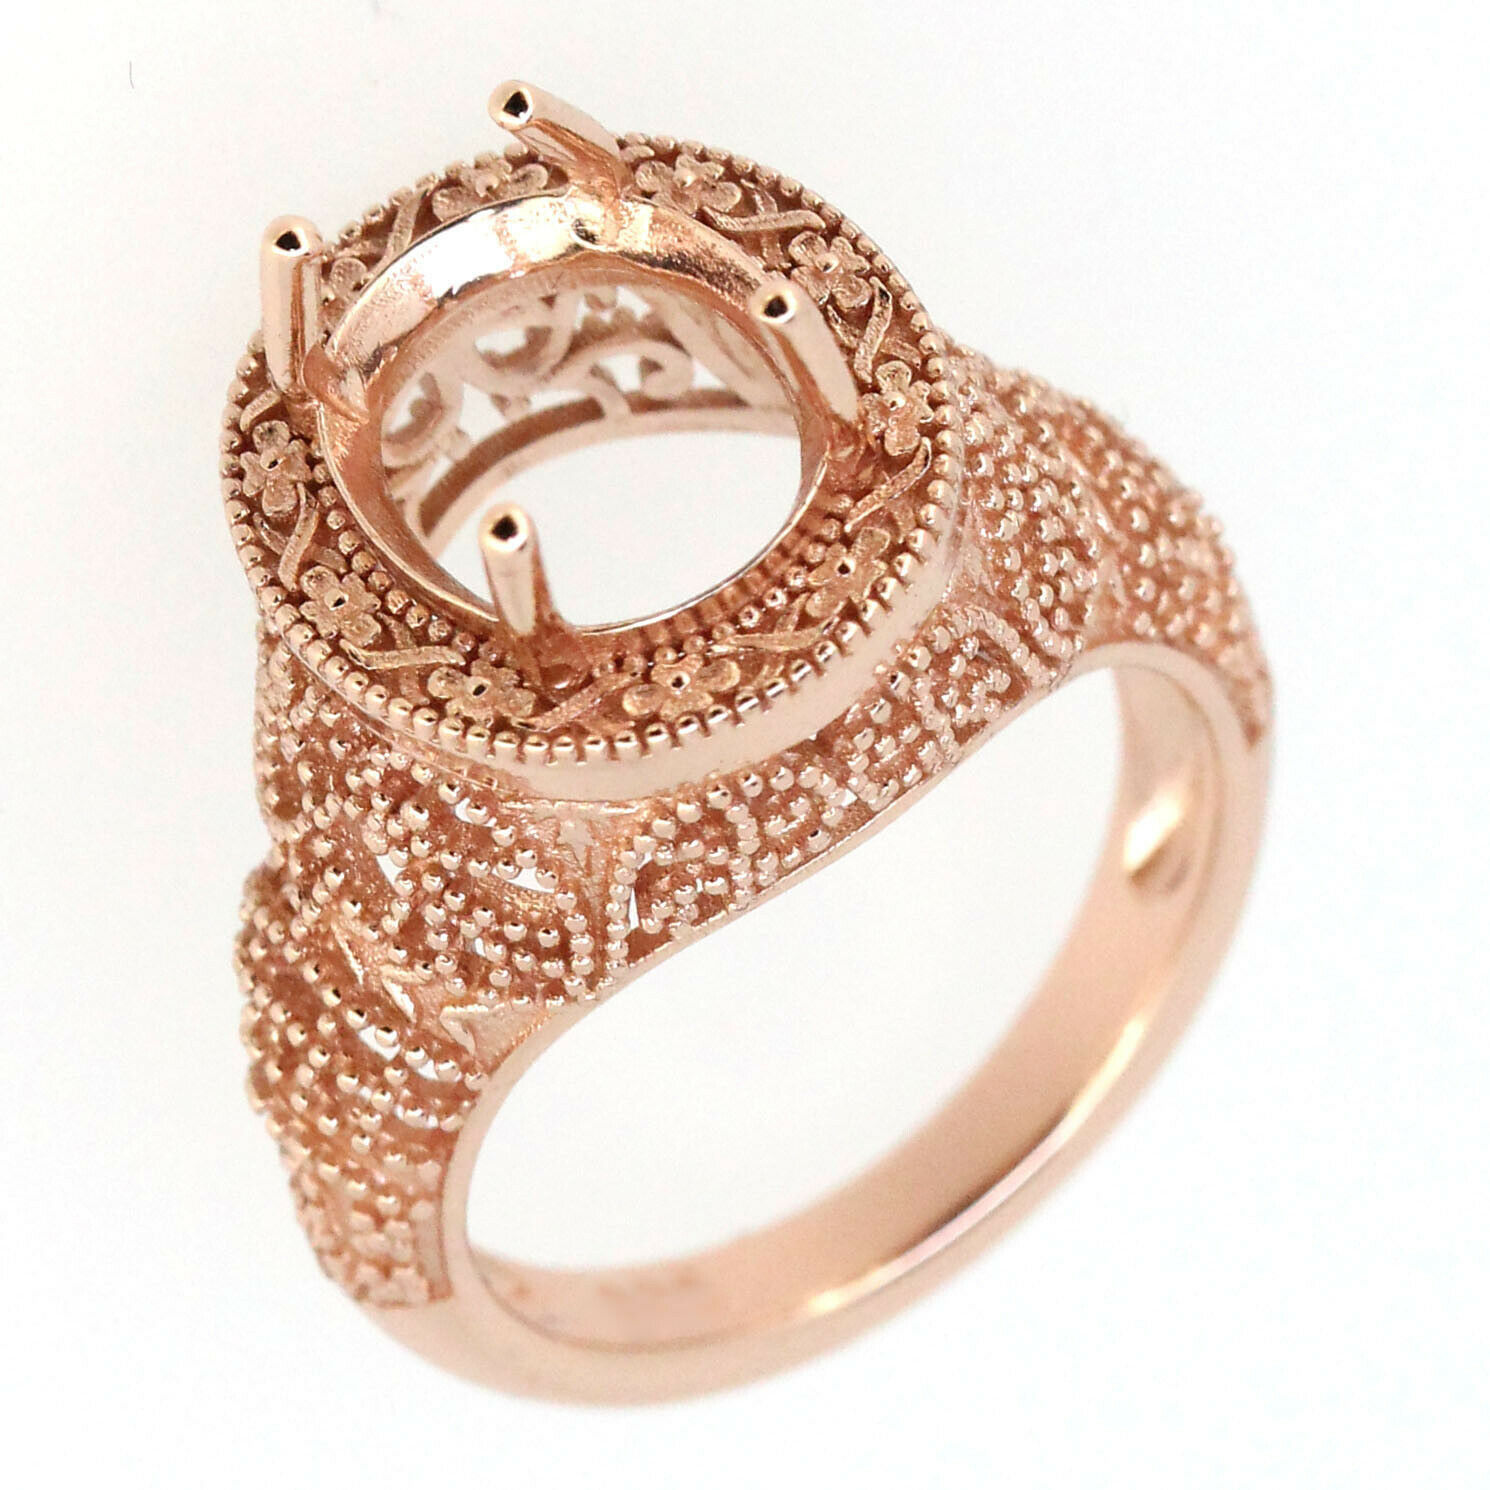 Filigree 14K pink gold Oval Shape 9x11mm Semi Mount Ring Setting